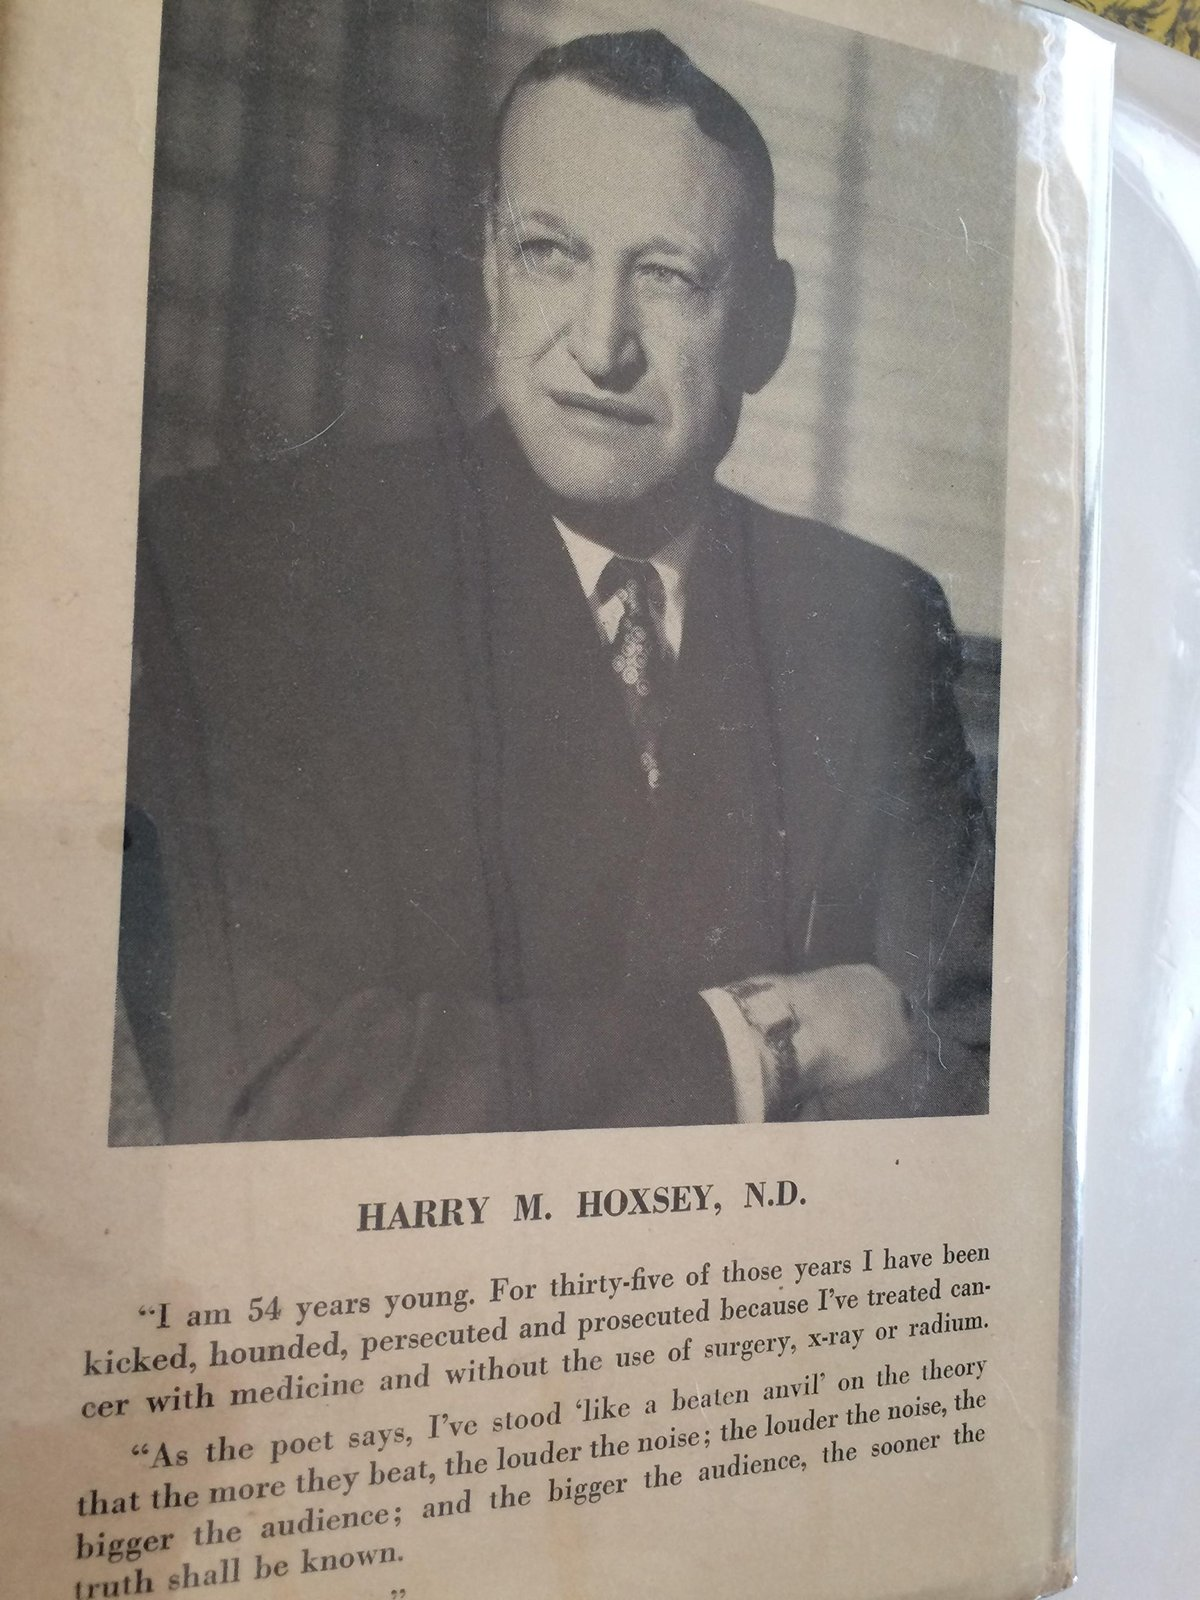 You don't have to die [Jan 01, 1956] Hoxsey, and 50 similar items